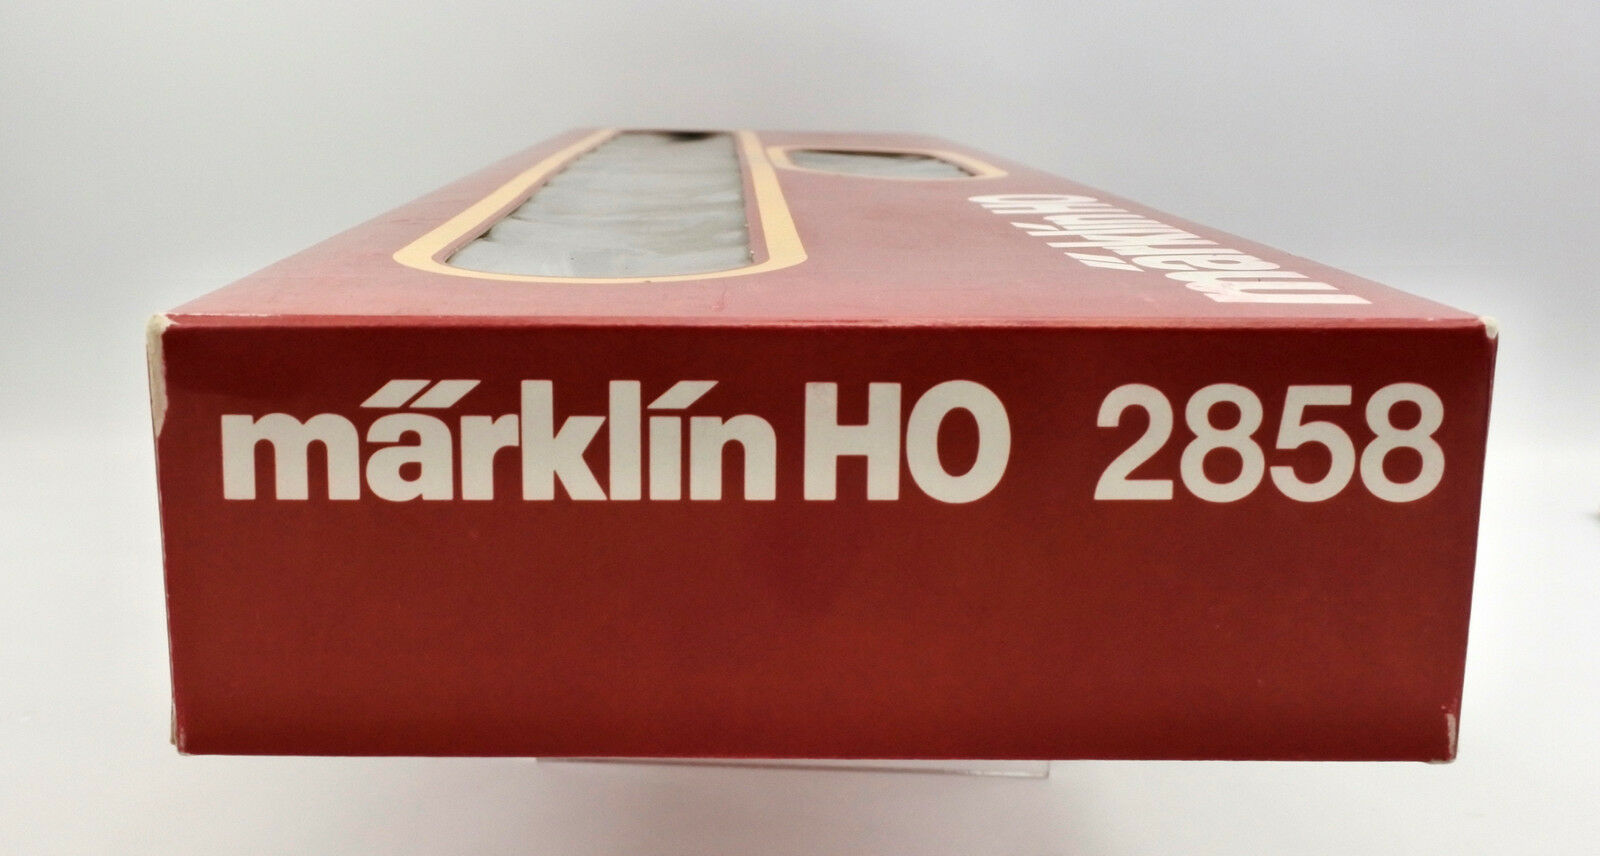 MARKLIN MARKLIN MARKLIN HO SCALE 2858 DB DIESEL ENGINE WITH 4 PASSENGER CAR SET a734dc